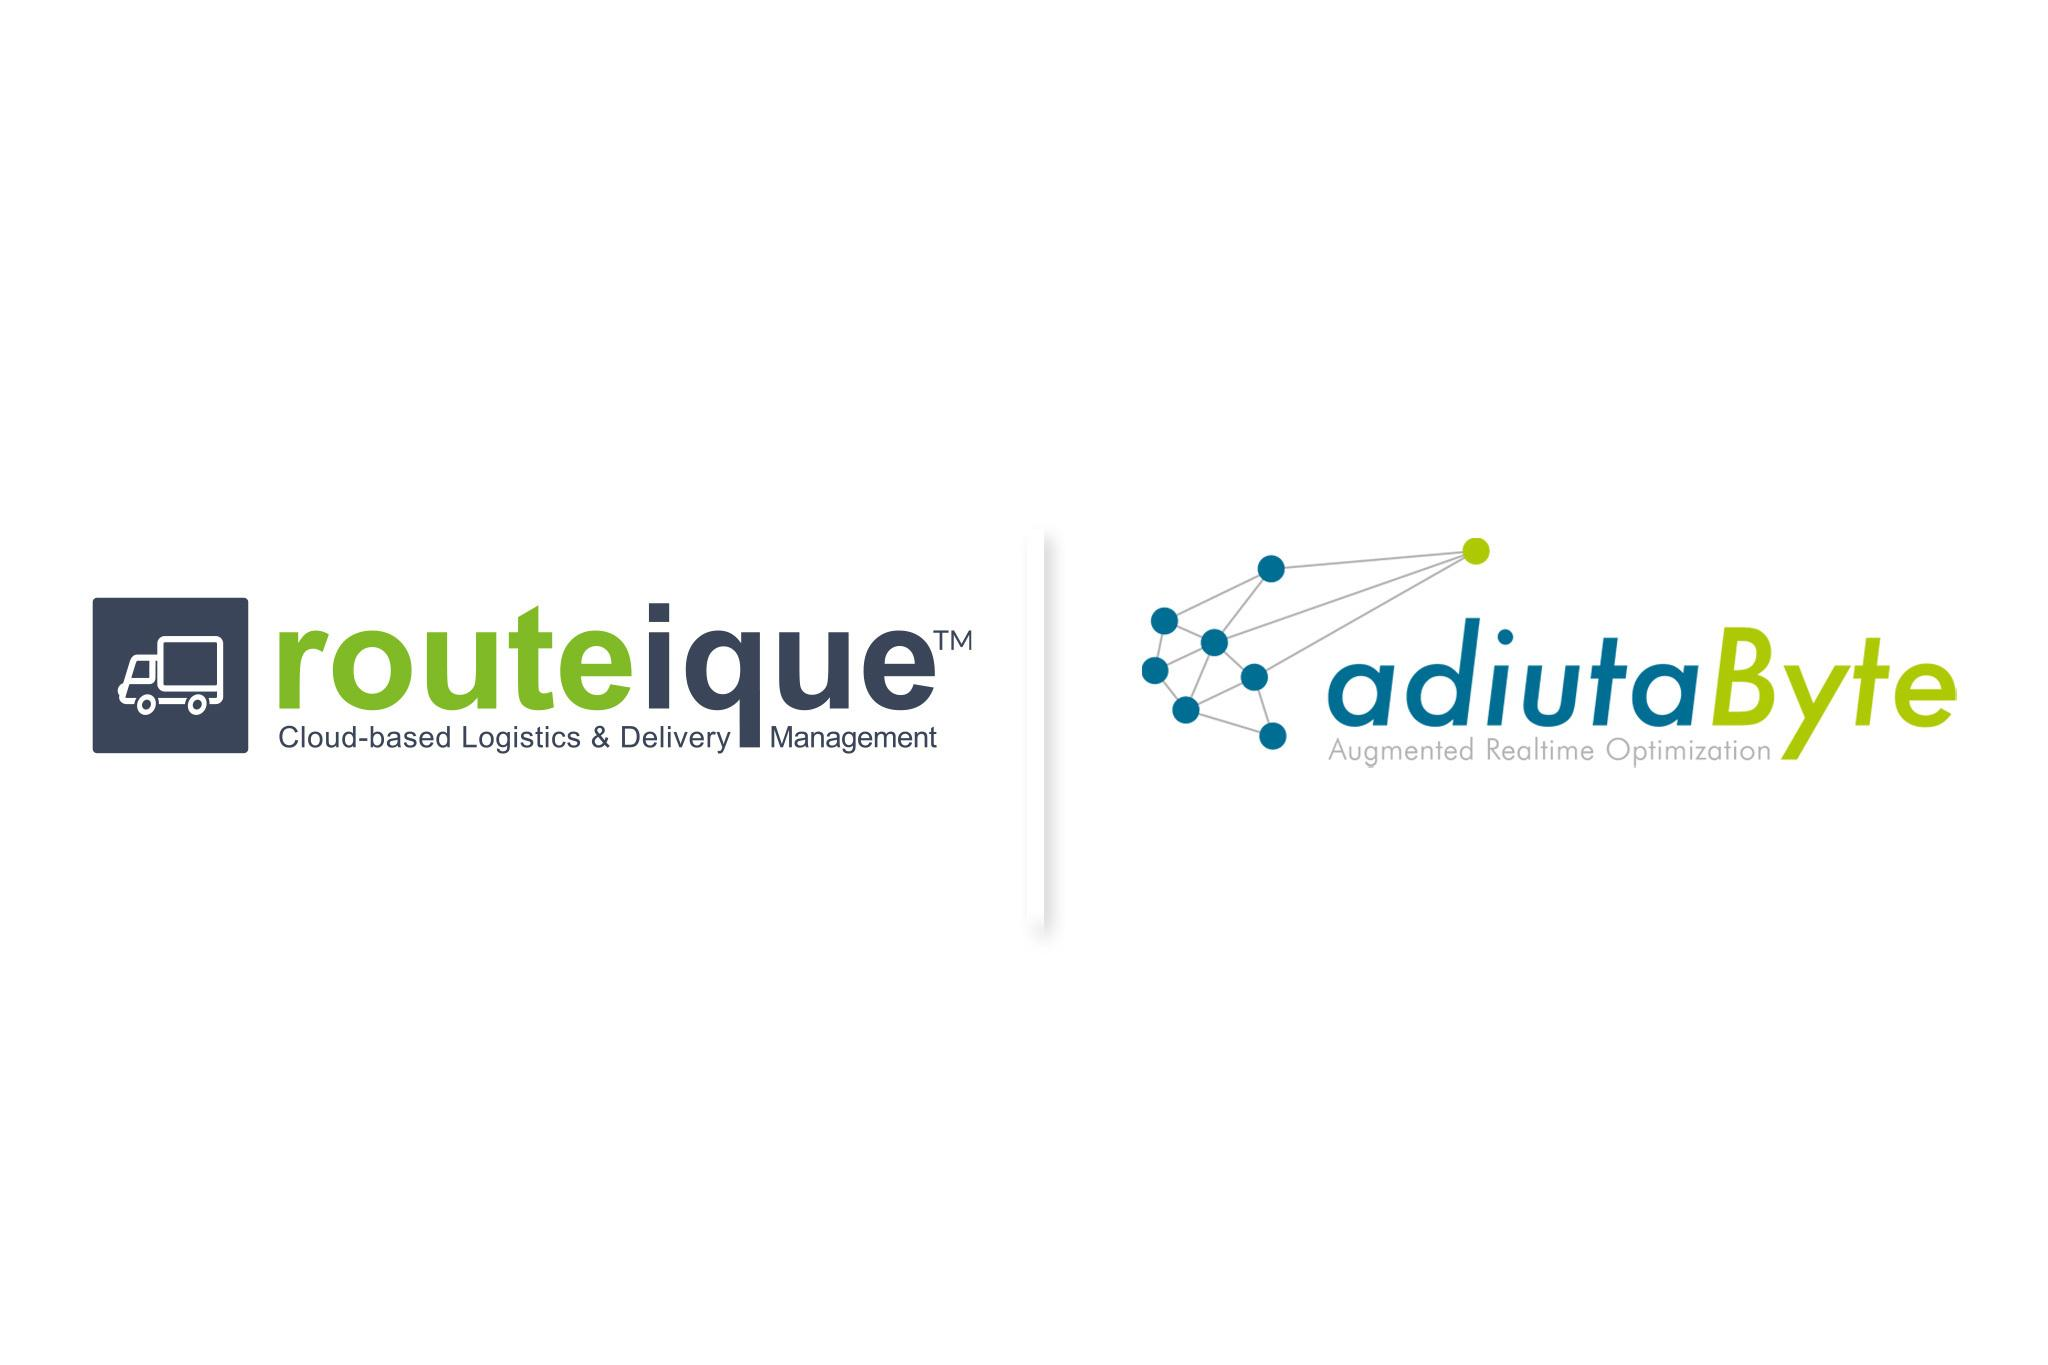 Routeique and adiutaByte